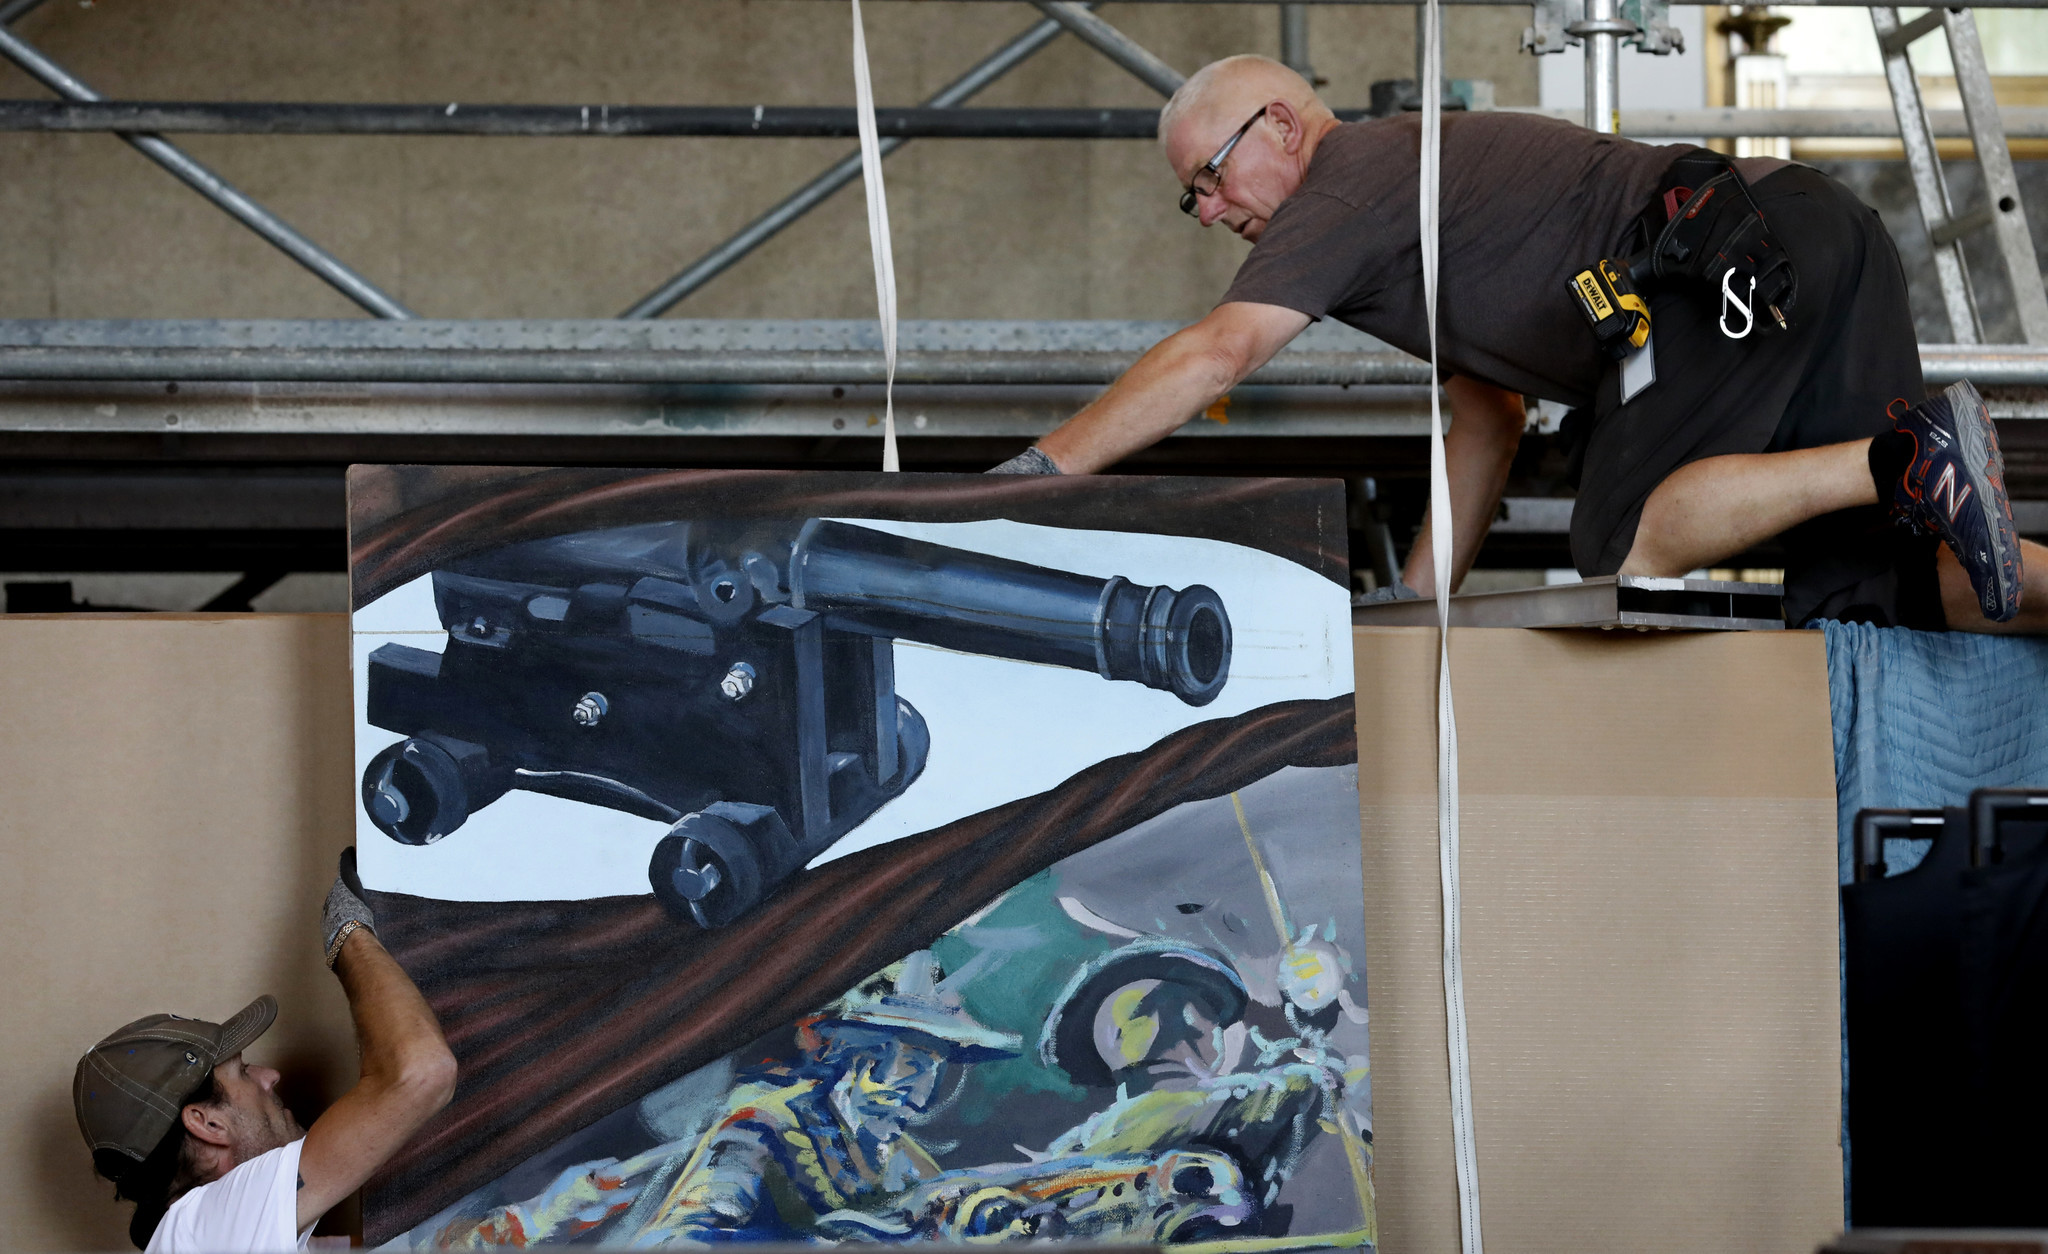 Kevan Overend, left, and Alan Bolger work on putting another panel into place. This one depicts a cannon used to defend the city in the Mexican American War.